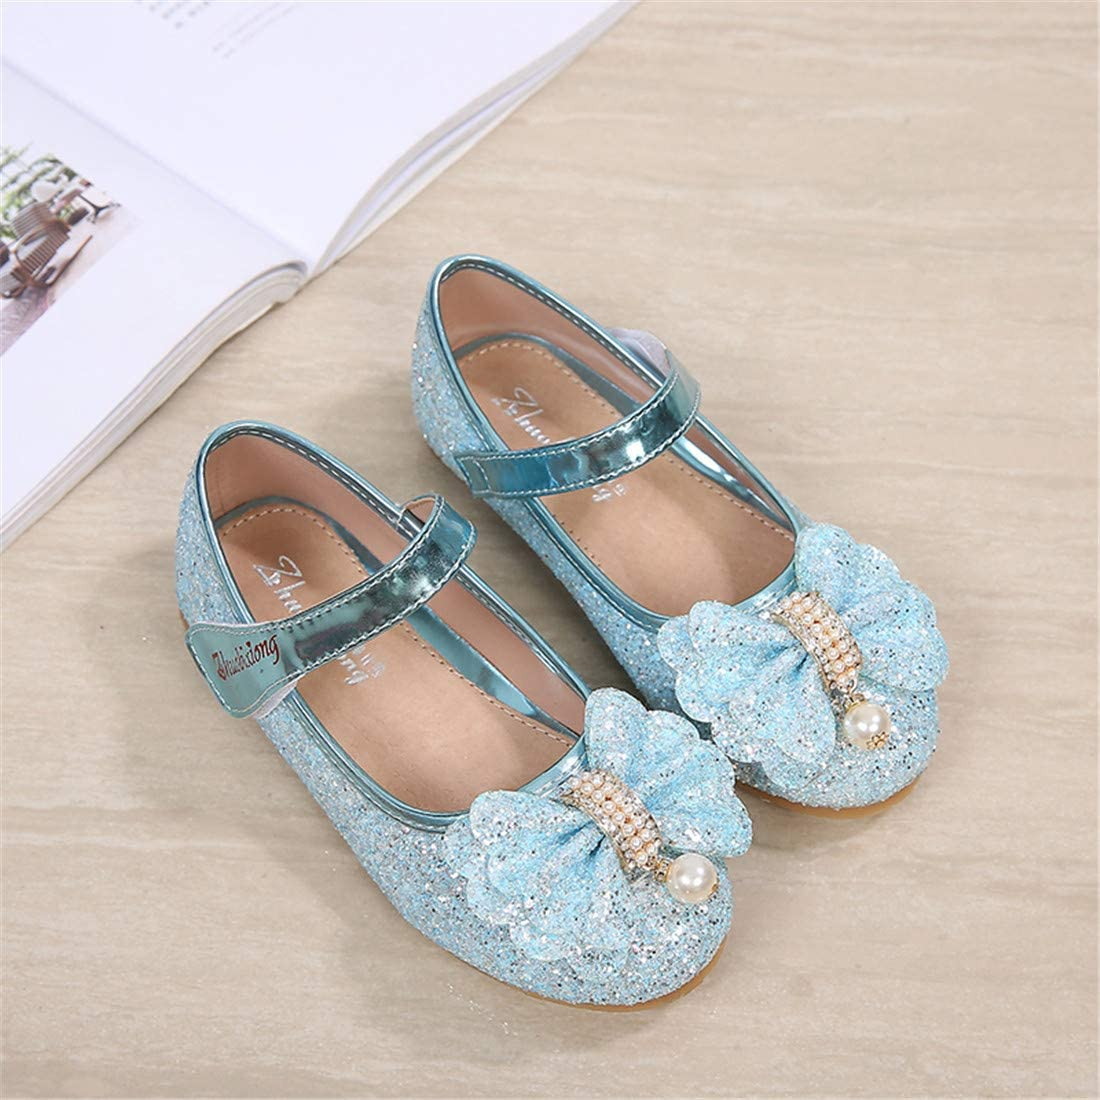 Birthday Party Little Girls Adorable Sparkle Mary Jane Princess Dress Shoes